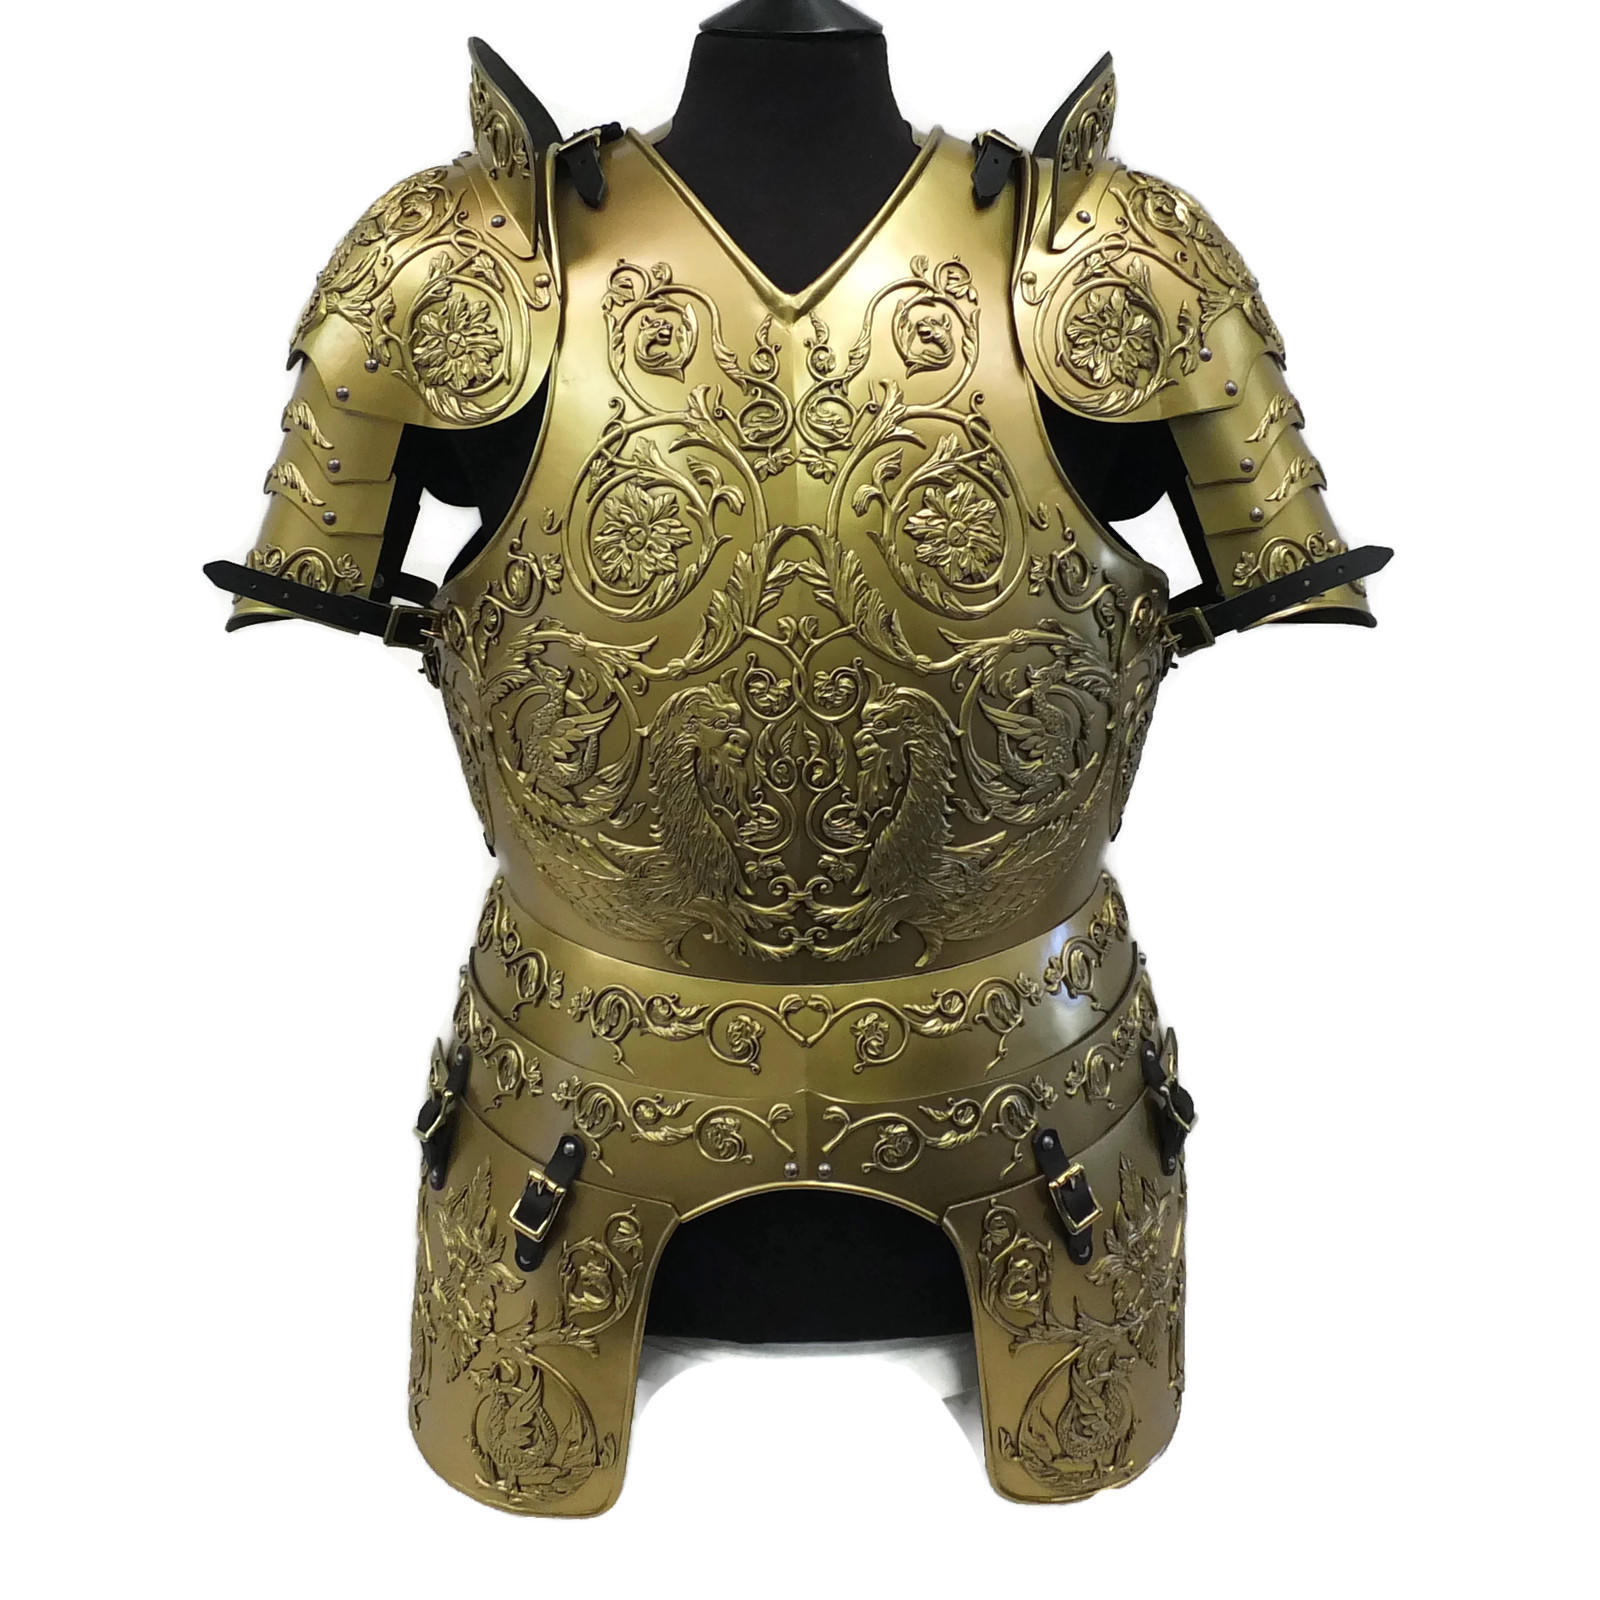 Negroli embossed larp armour set gold finish